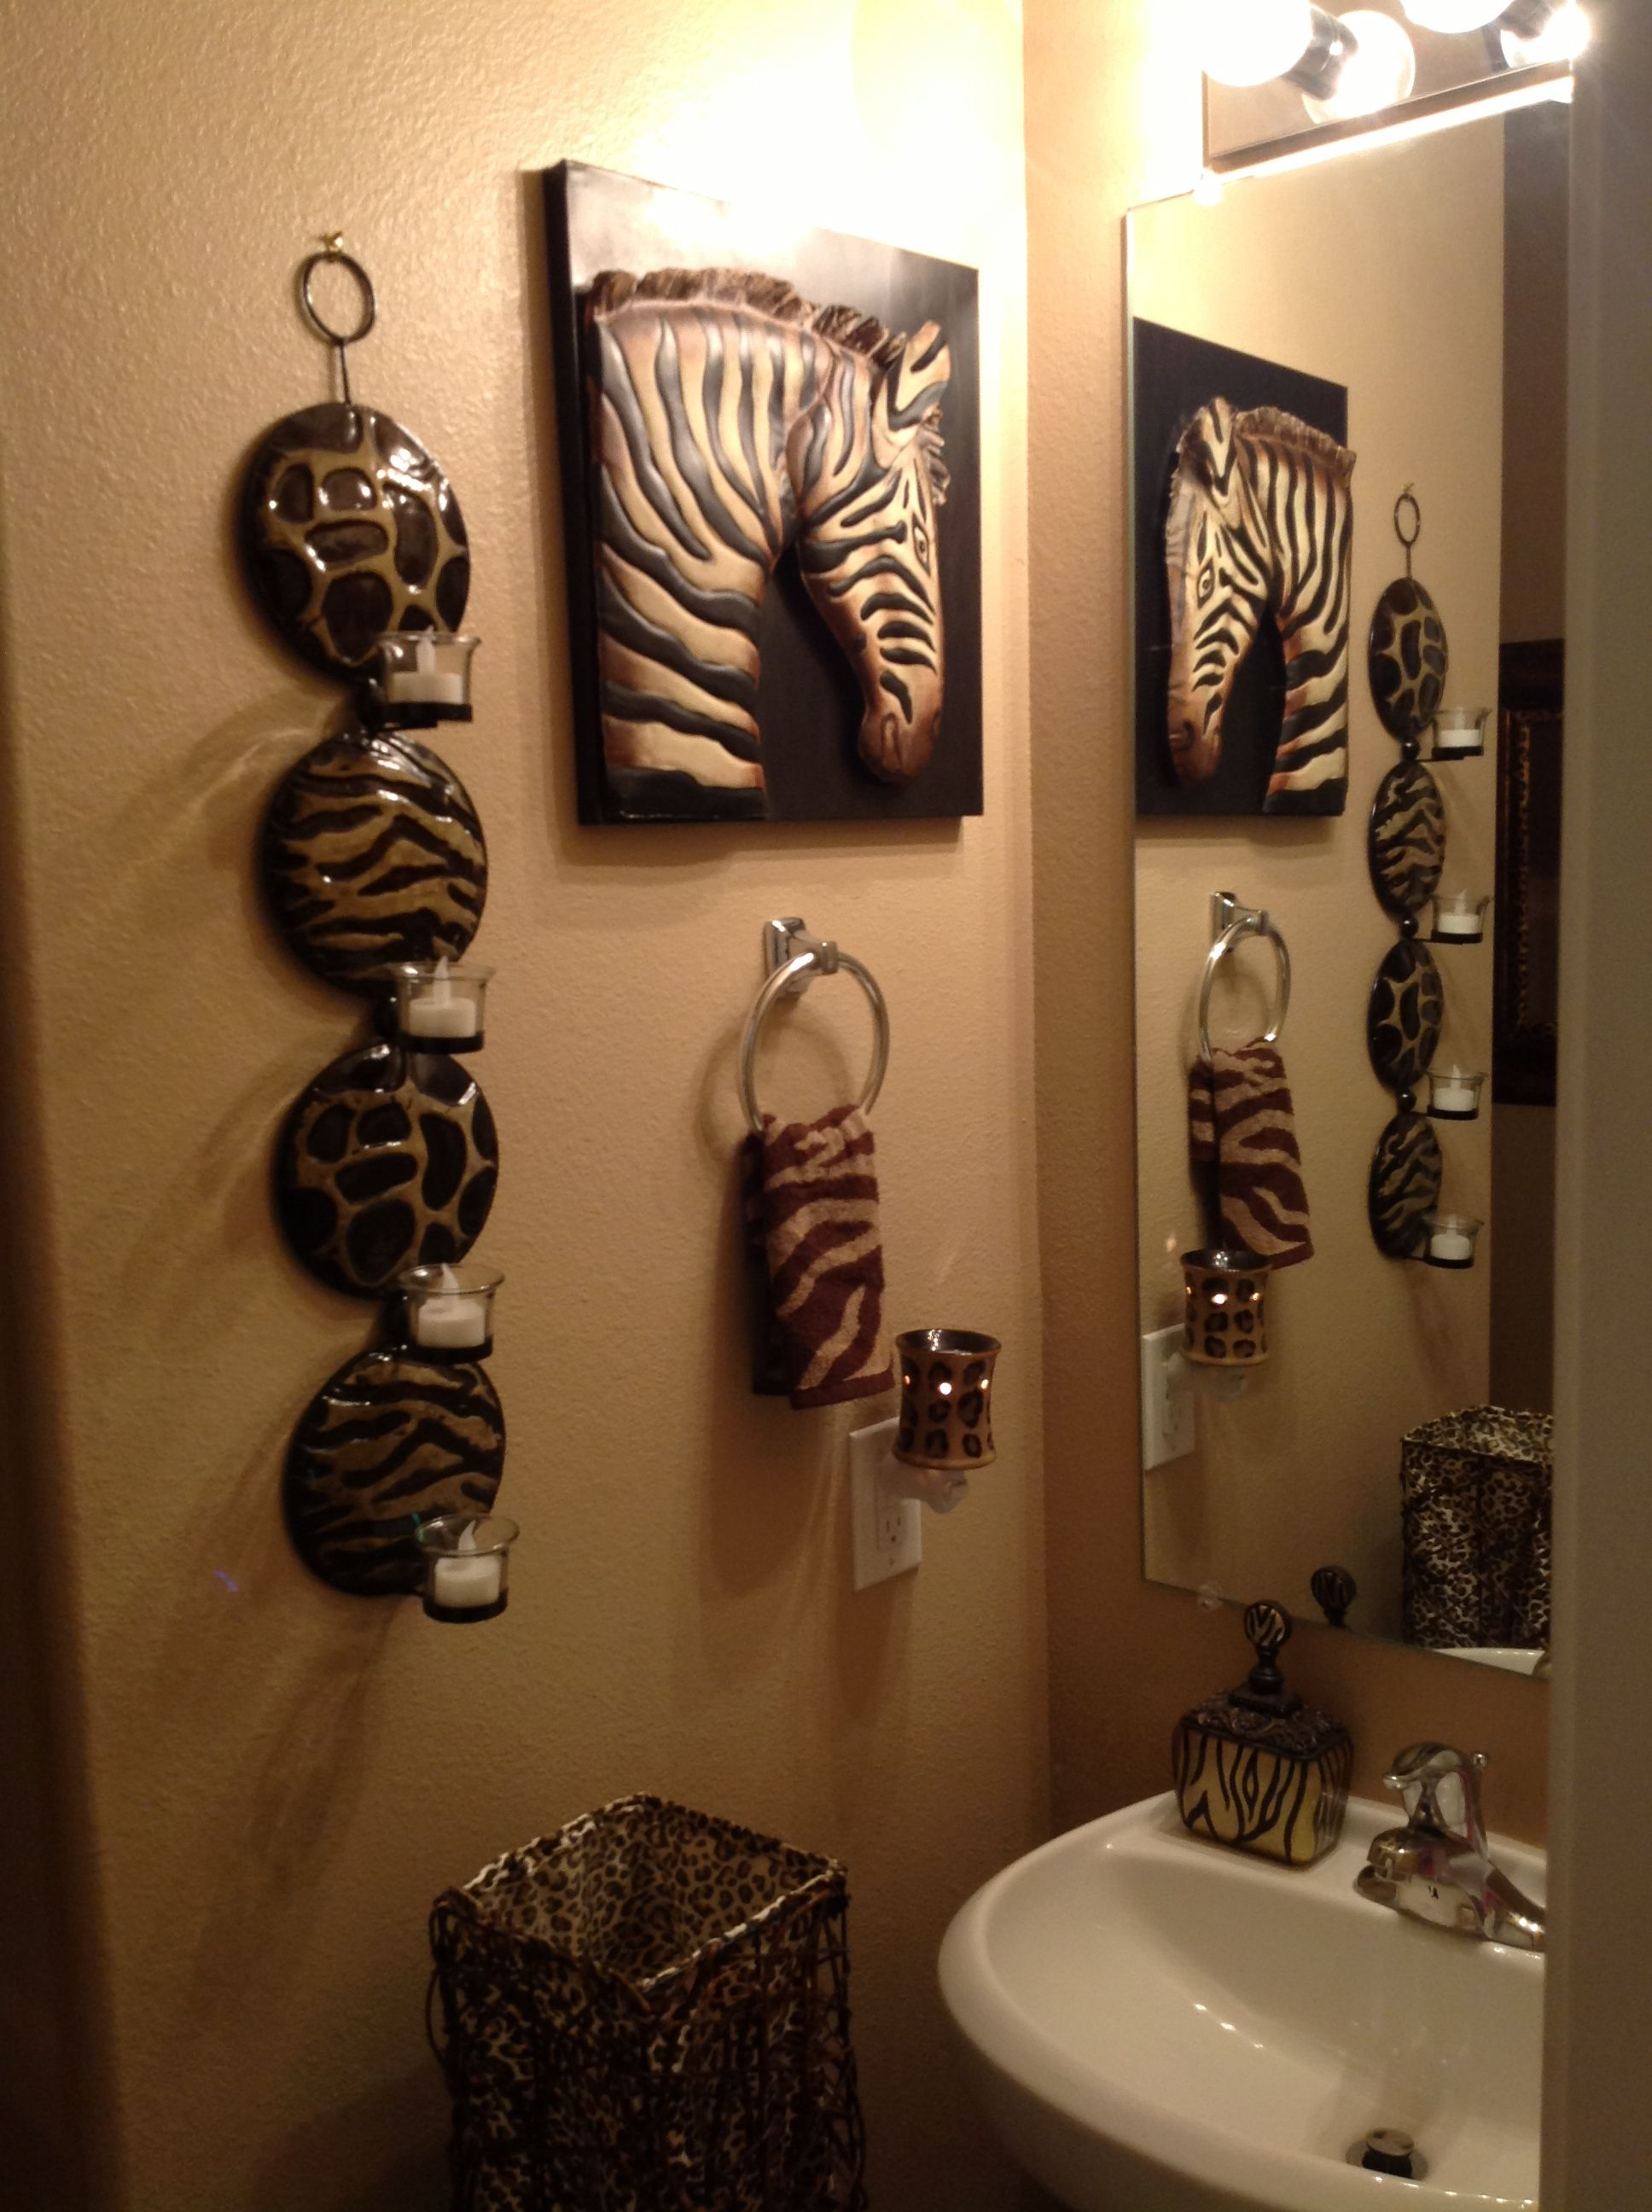 Safari Bathroom | Safari Bathroom | Pinterest | Safari ...